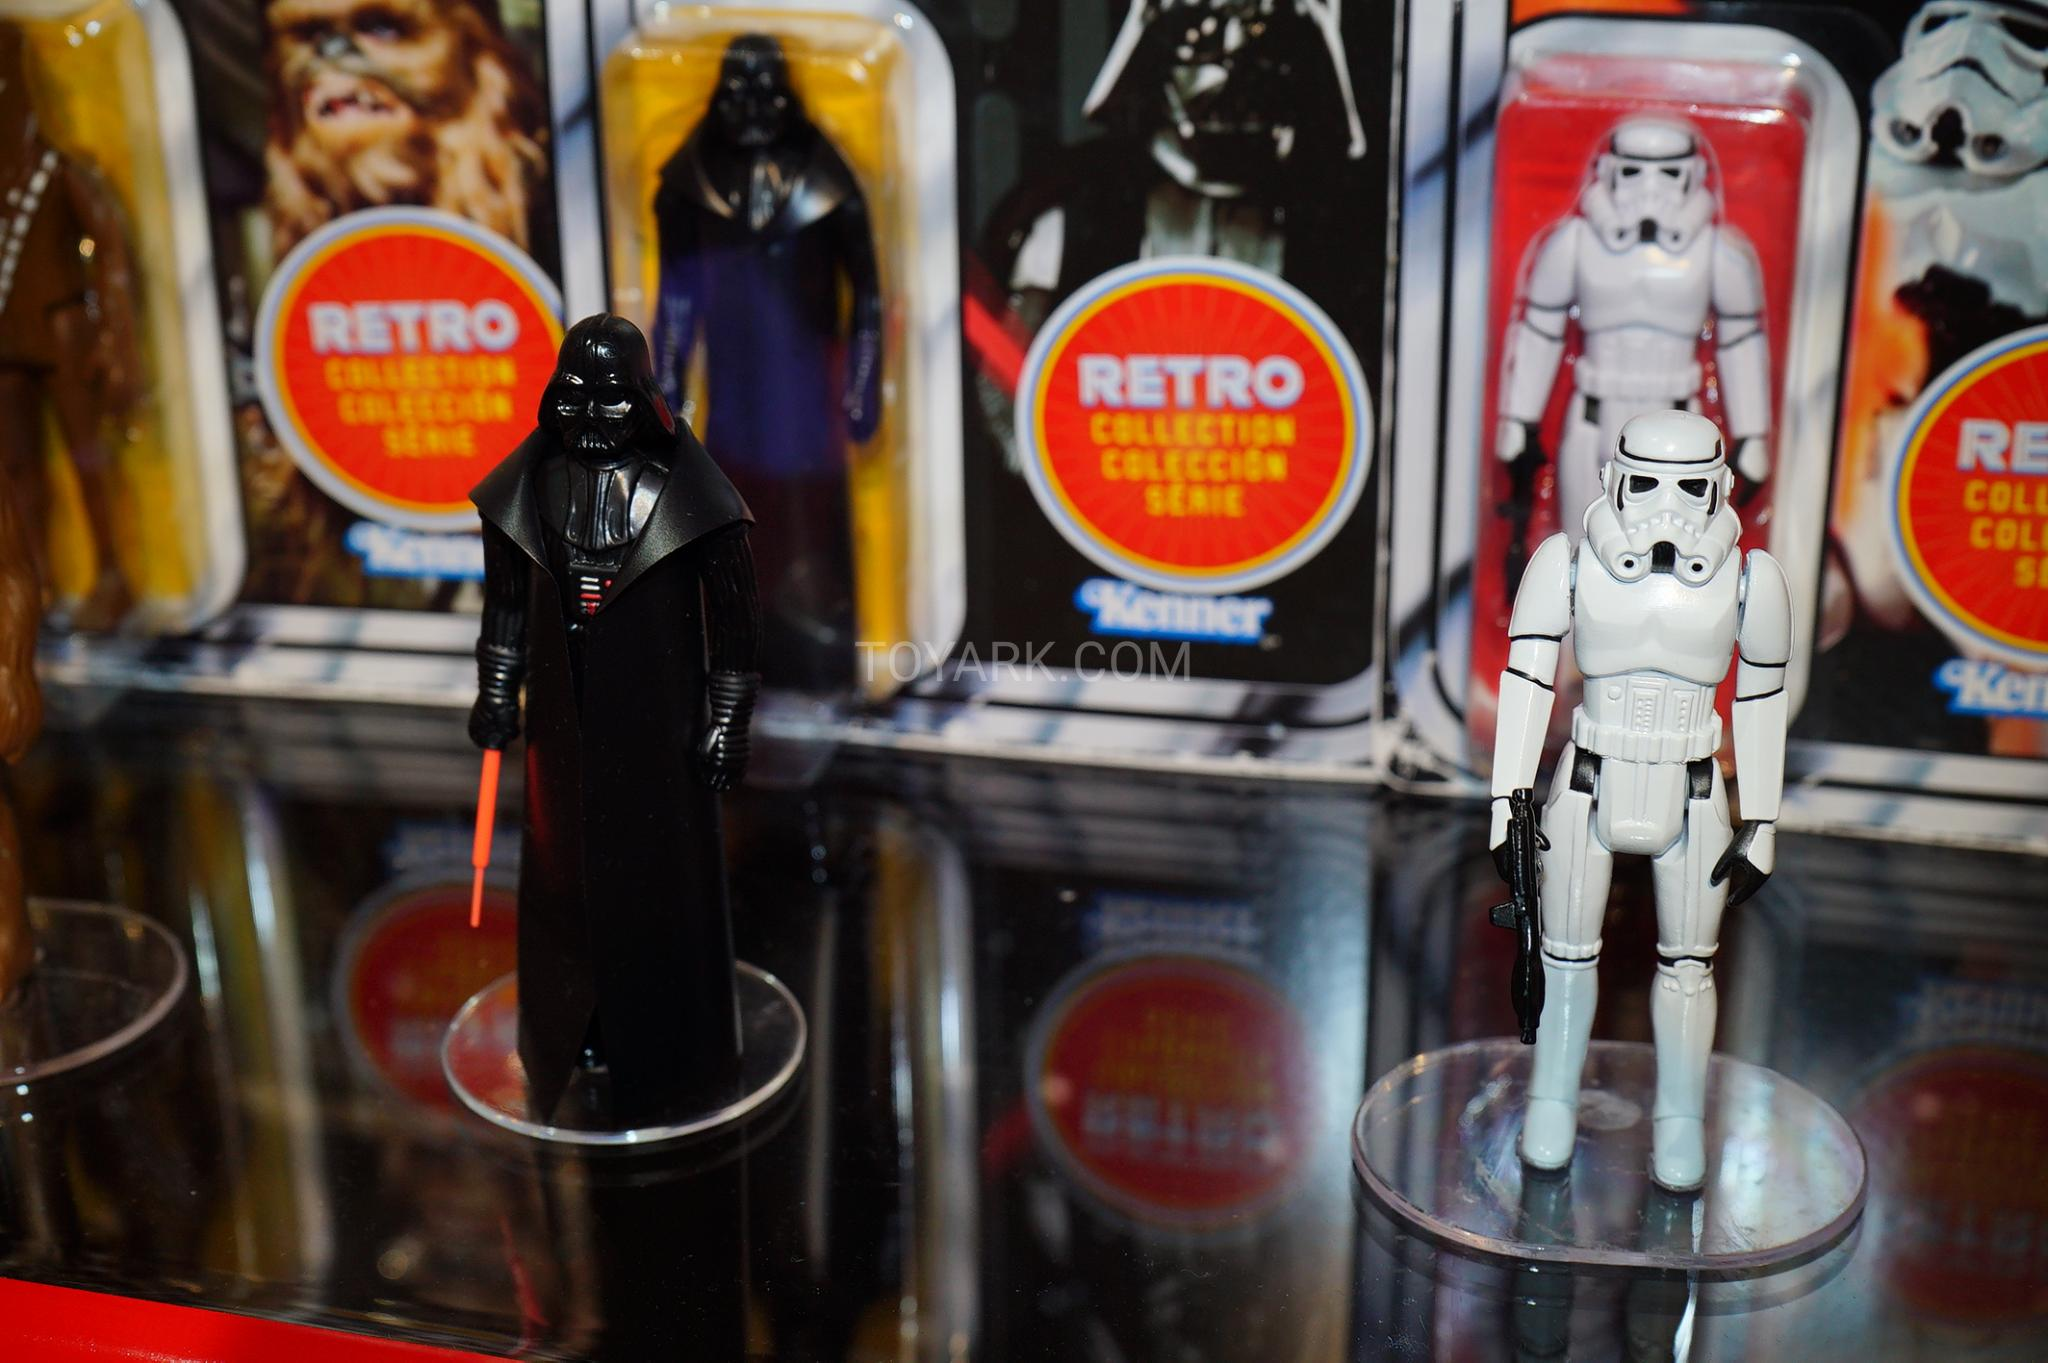 Star Wars Hasbro The Vintage Collection /& Rétro Figurines Tout Momc